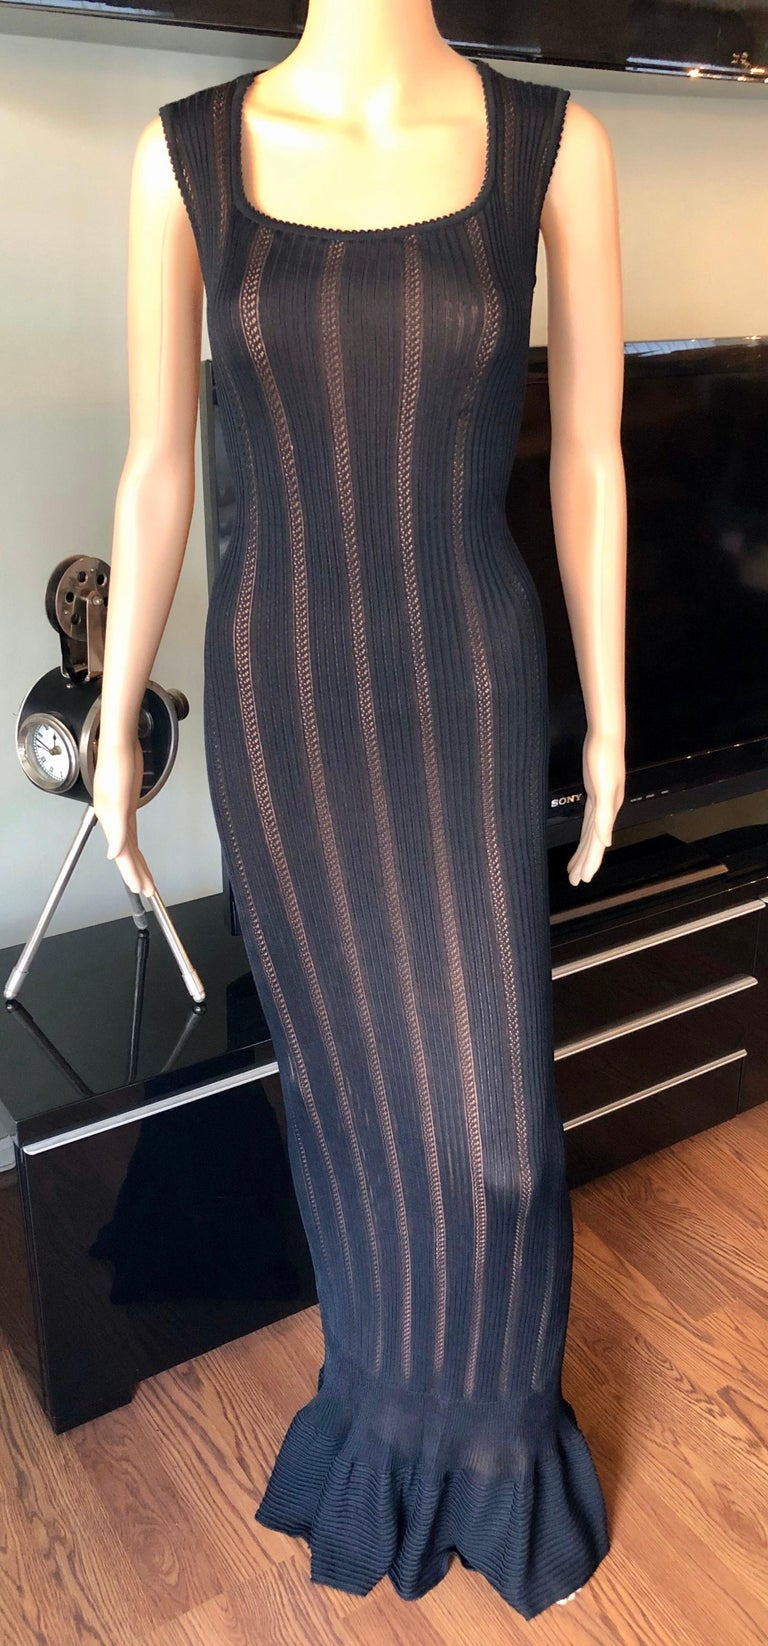 Azzedine Alaia Vintage 1990's Knit Bodycon Black Dress Gown Size M  Alaïa knit semi sheer sleeveless knit maxi dress with nude slip, scoop neck and zip closure at back.